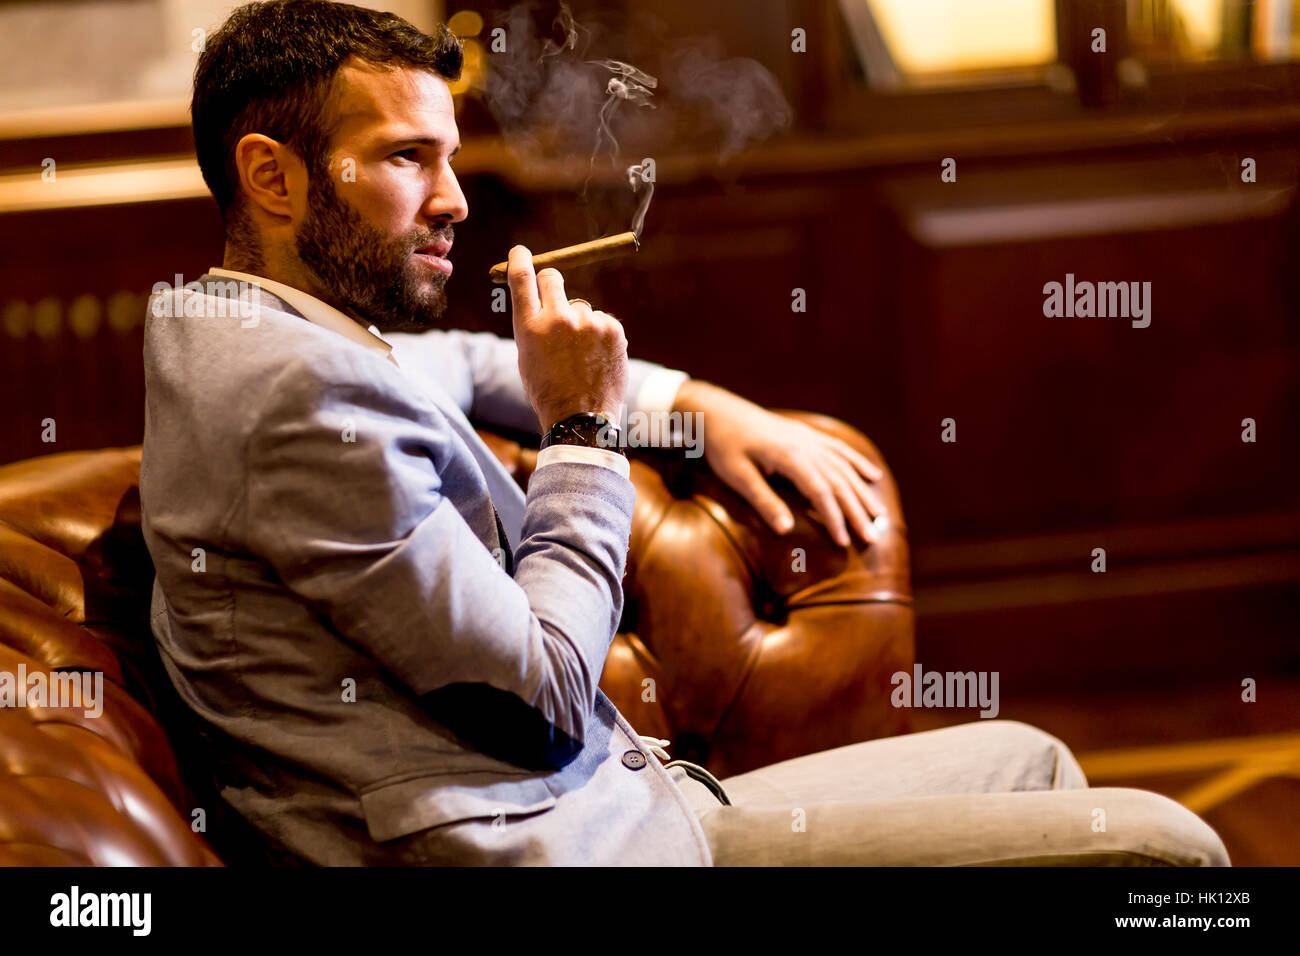 Handsome Man Sitting On A Leather Sofa And Smoking Cigar